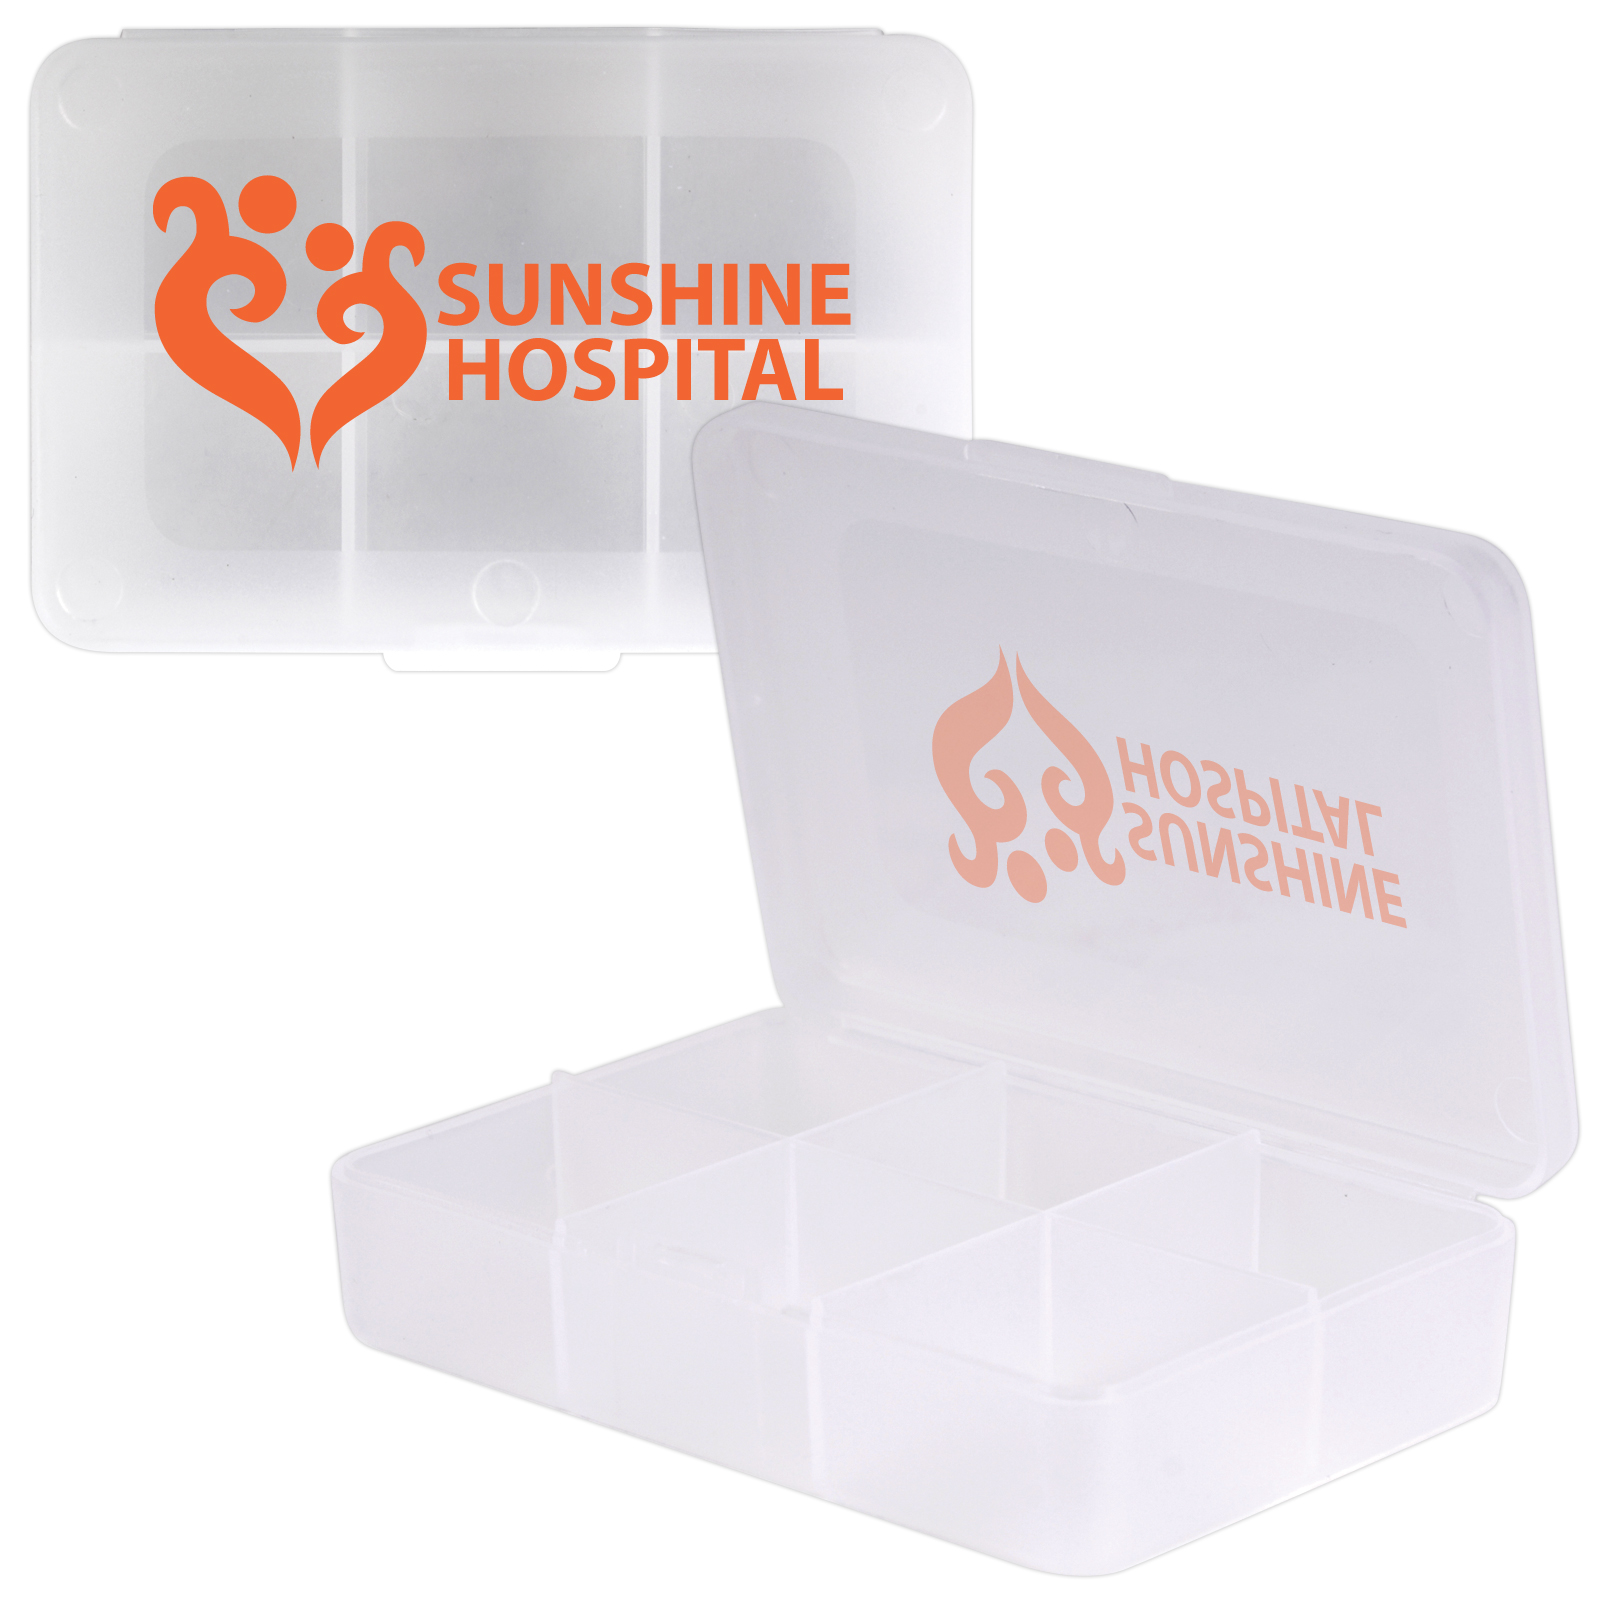 Clear Rectangular 6 Compartment Pill Box - Includes a 1 colour printed logo, From $1.12